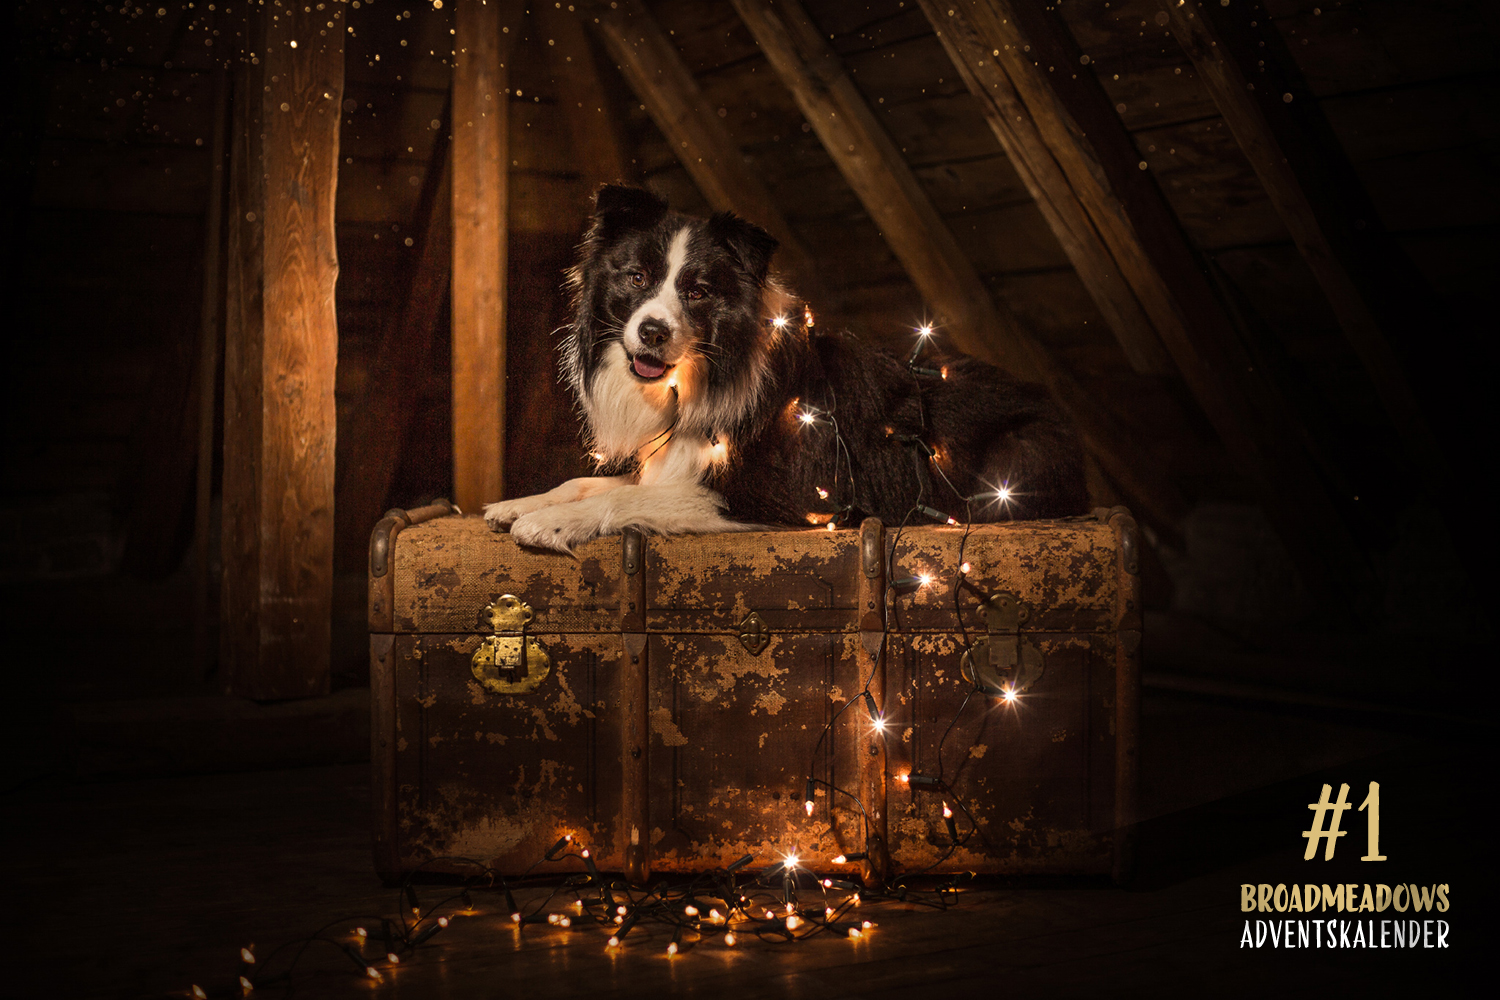 Broadmeadows Border Collies Adventskalender – No. 1: »Buddy« (Broadmeadows Body and Soul)